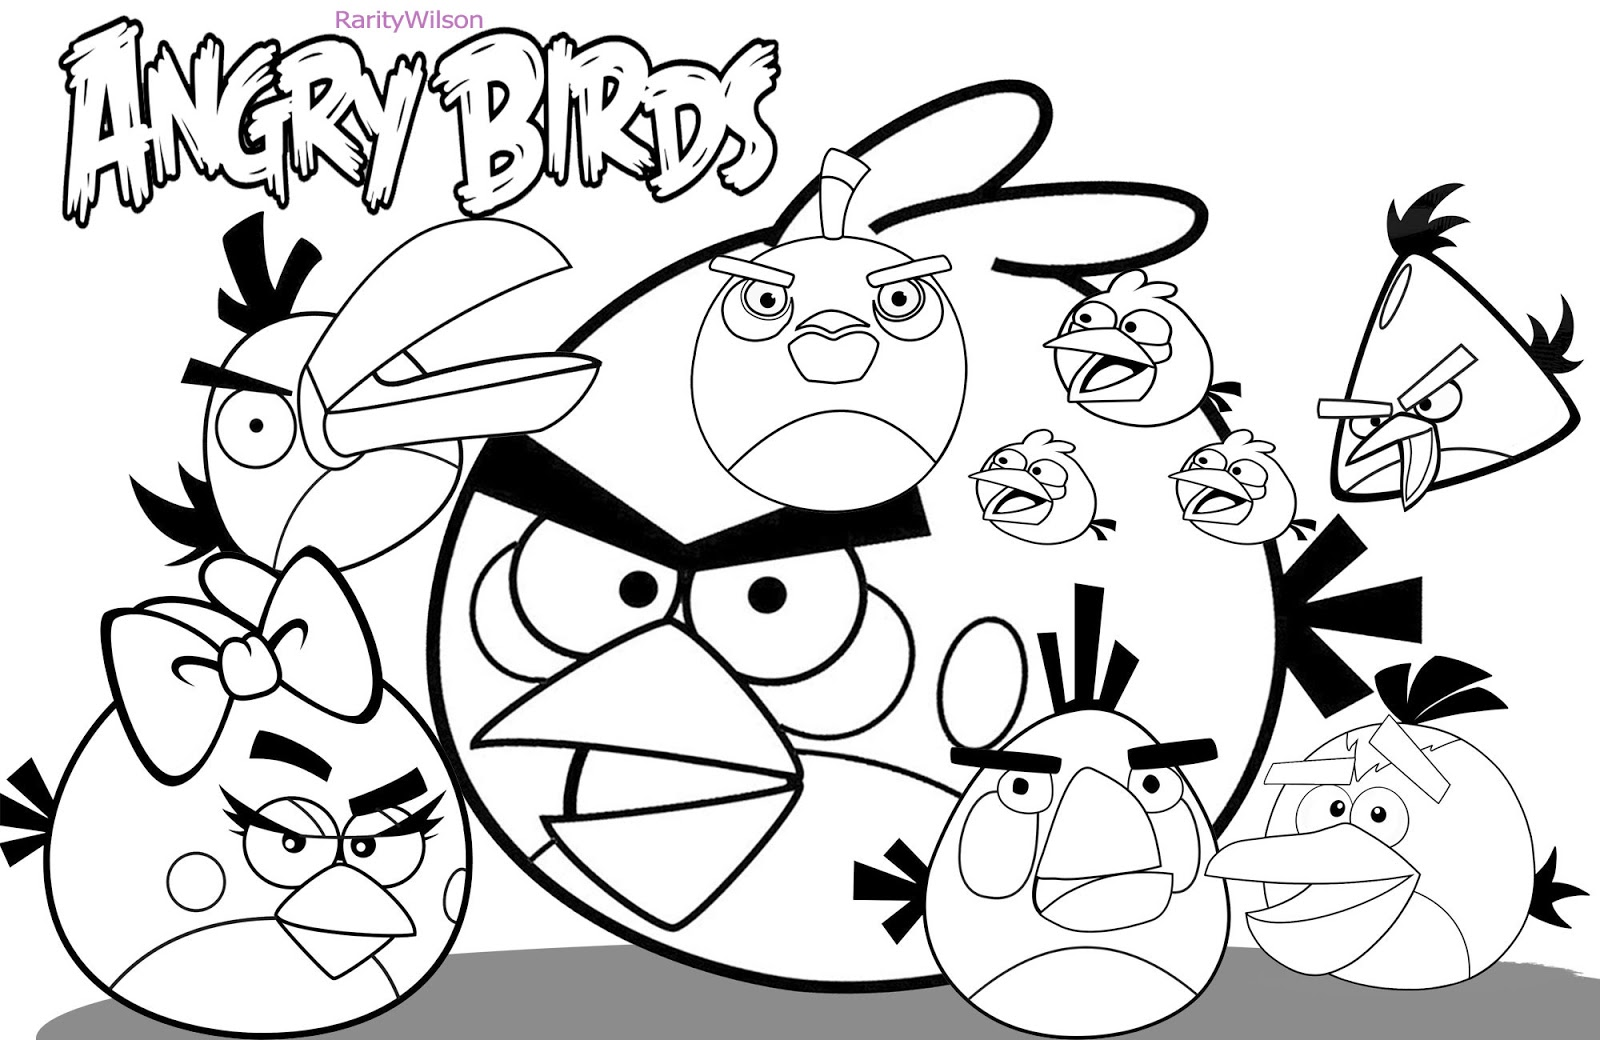 bird colouring pictures birds coloring pages to knowing the kind of birds name pictures colouring bird